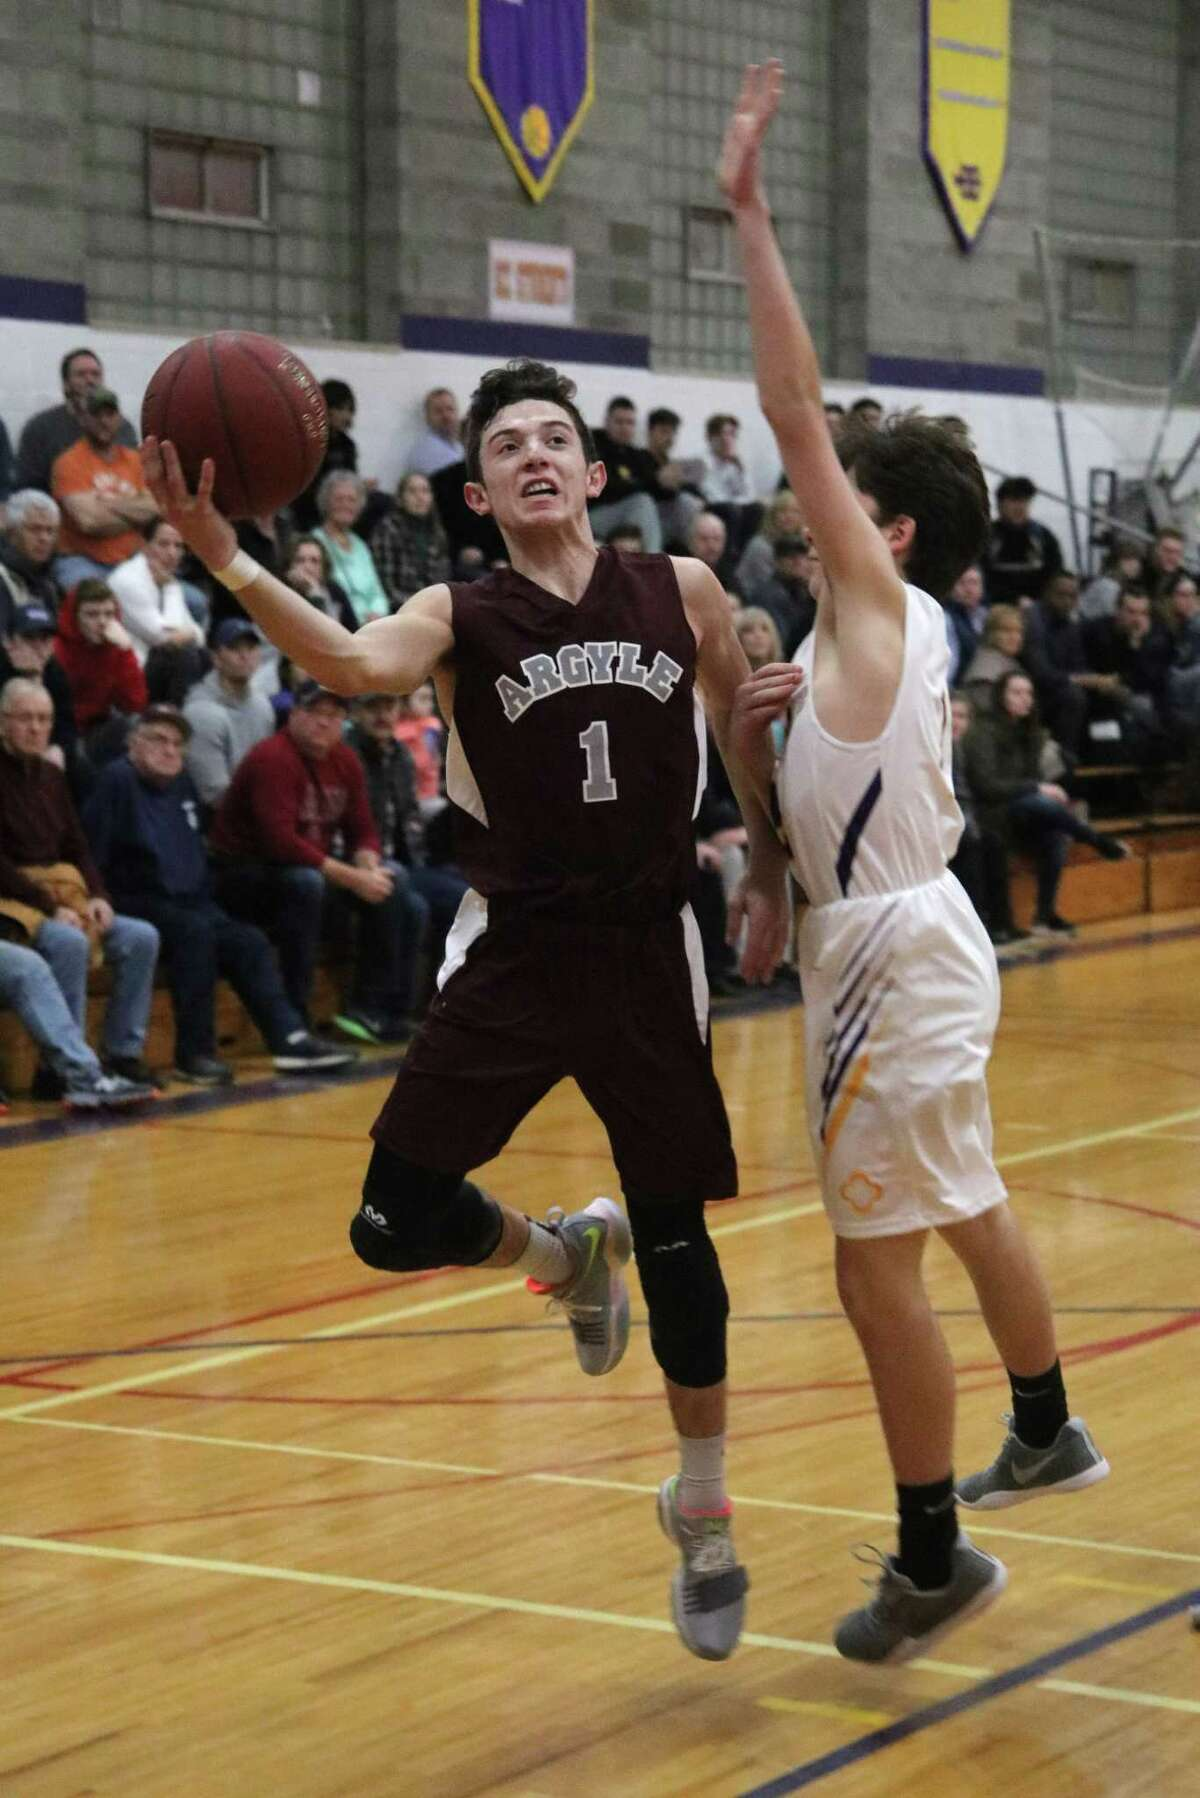 Argyle's Peyton Lufkin goes up as Spa Catholic's Jake Welcome reaches to block during boys varsity basketball action at Saratoga Central Catholic High School Wednesday, Jan. 24, 2018 (Ed Burke - Special to The Times Union)